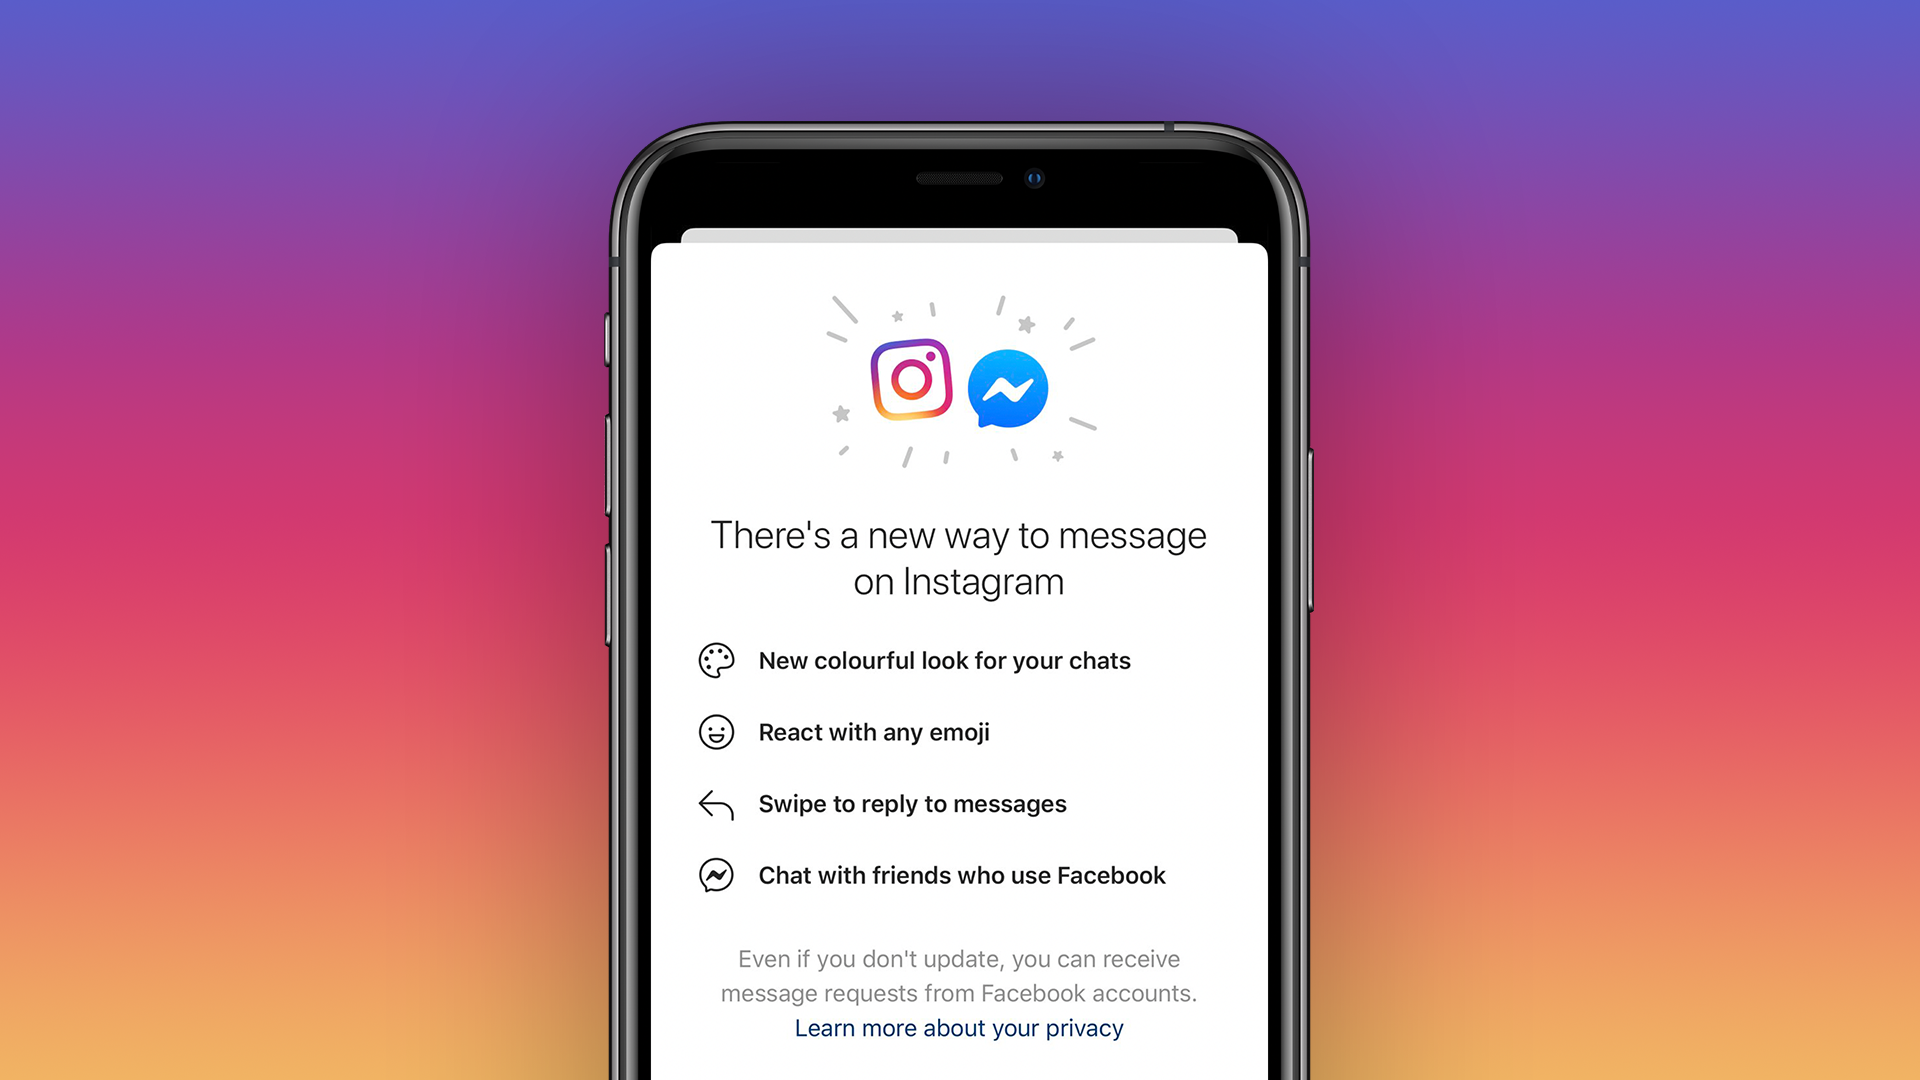 Facebook is now merging Instagram and Messenger chats into one service – 9to5Mac